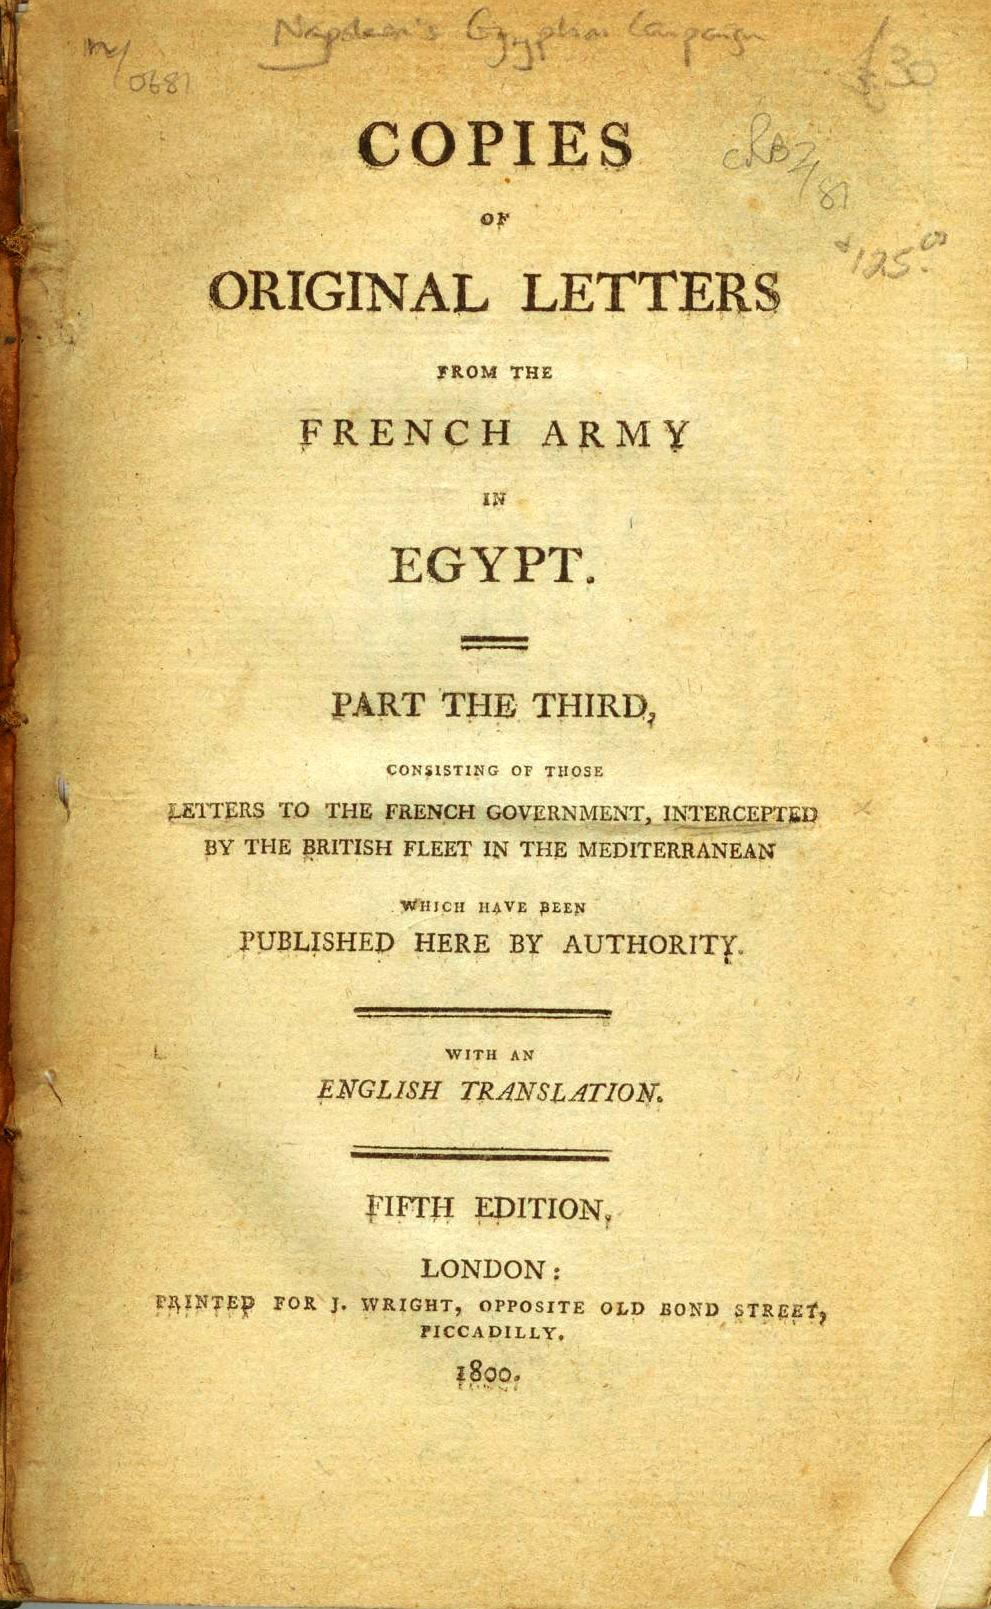 Copies of Original Letters From the French Army in Egypt. Part the Third, Consisting of those Letters to the French Government, Intercepted by the British Fleet in the Mediterranean Which have been Published Here by Authority. With an English Translation.